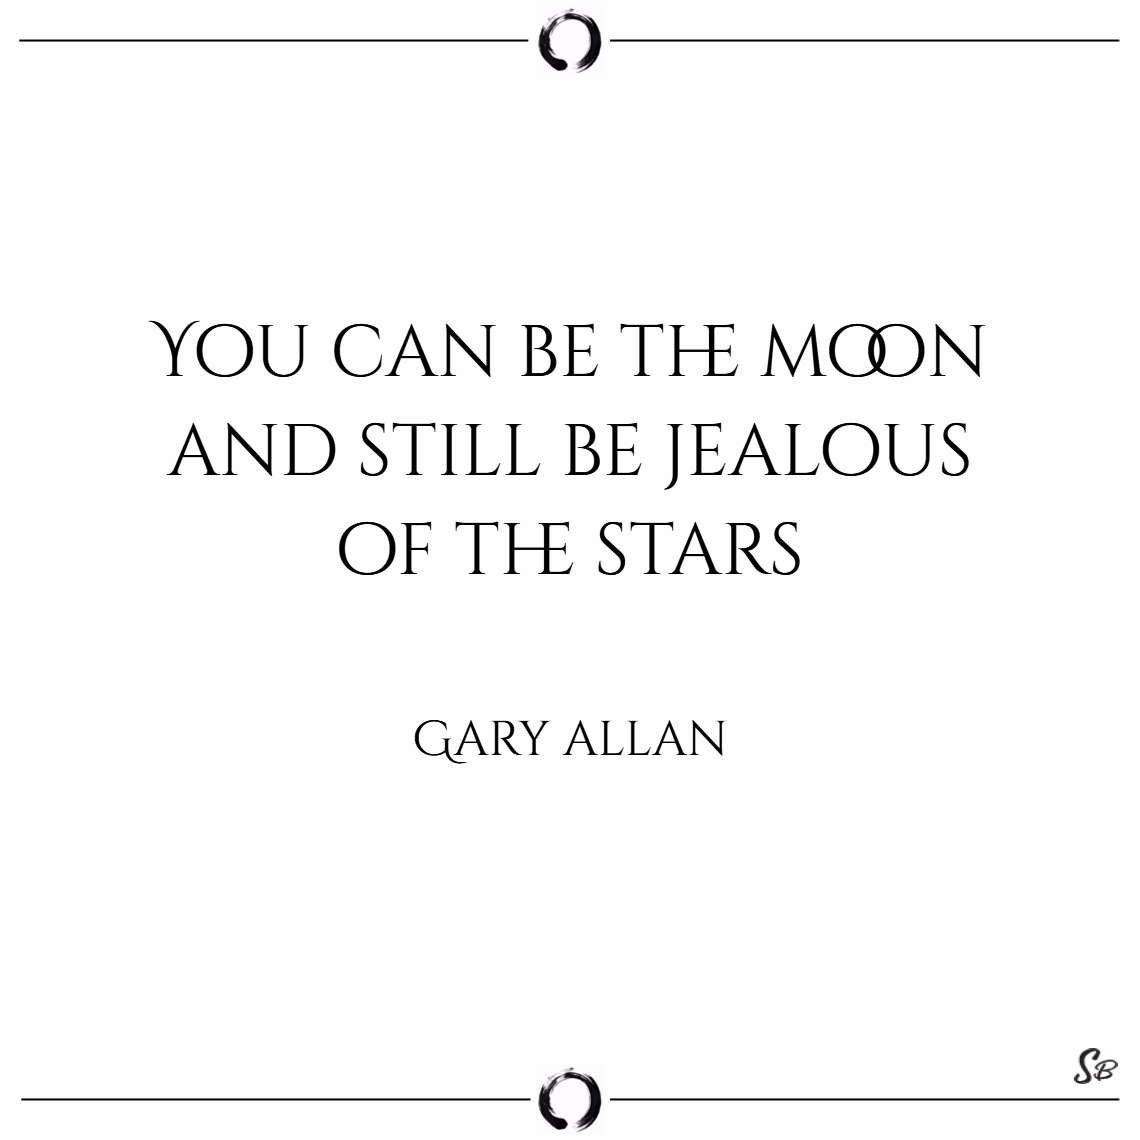 You can be the moon and still be jealous of the stars. – gary allan